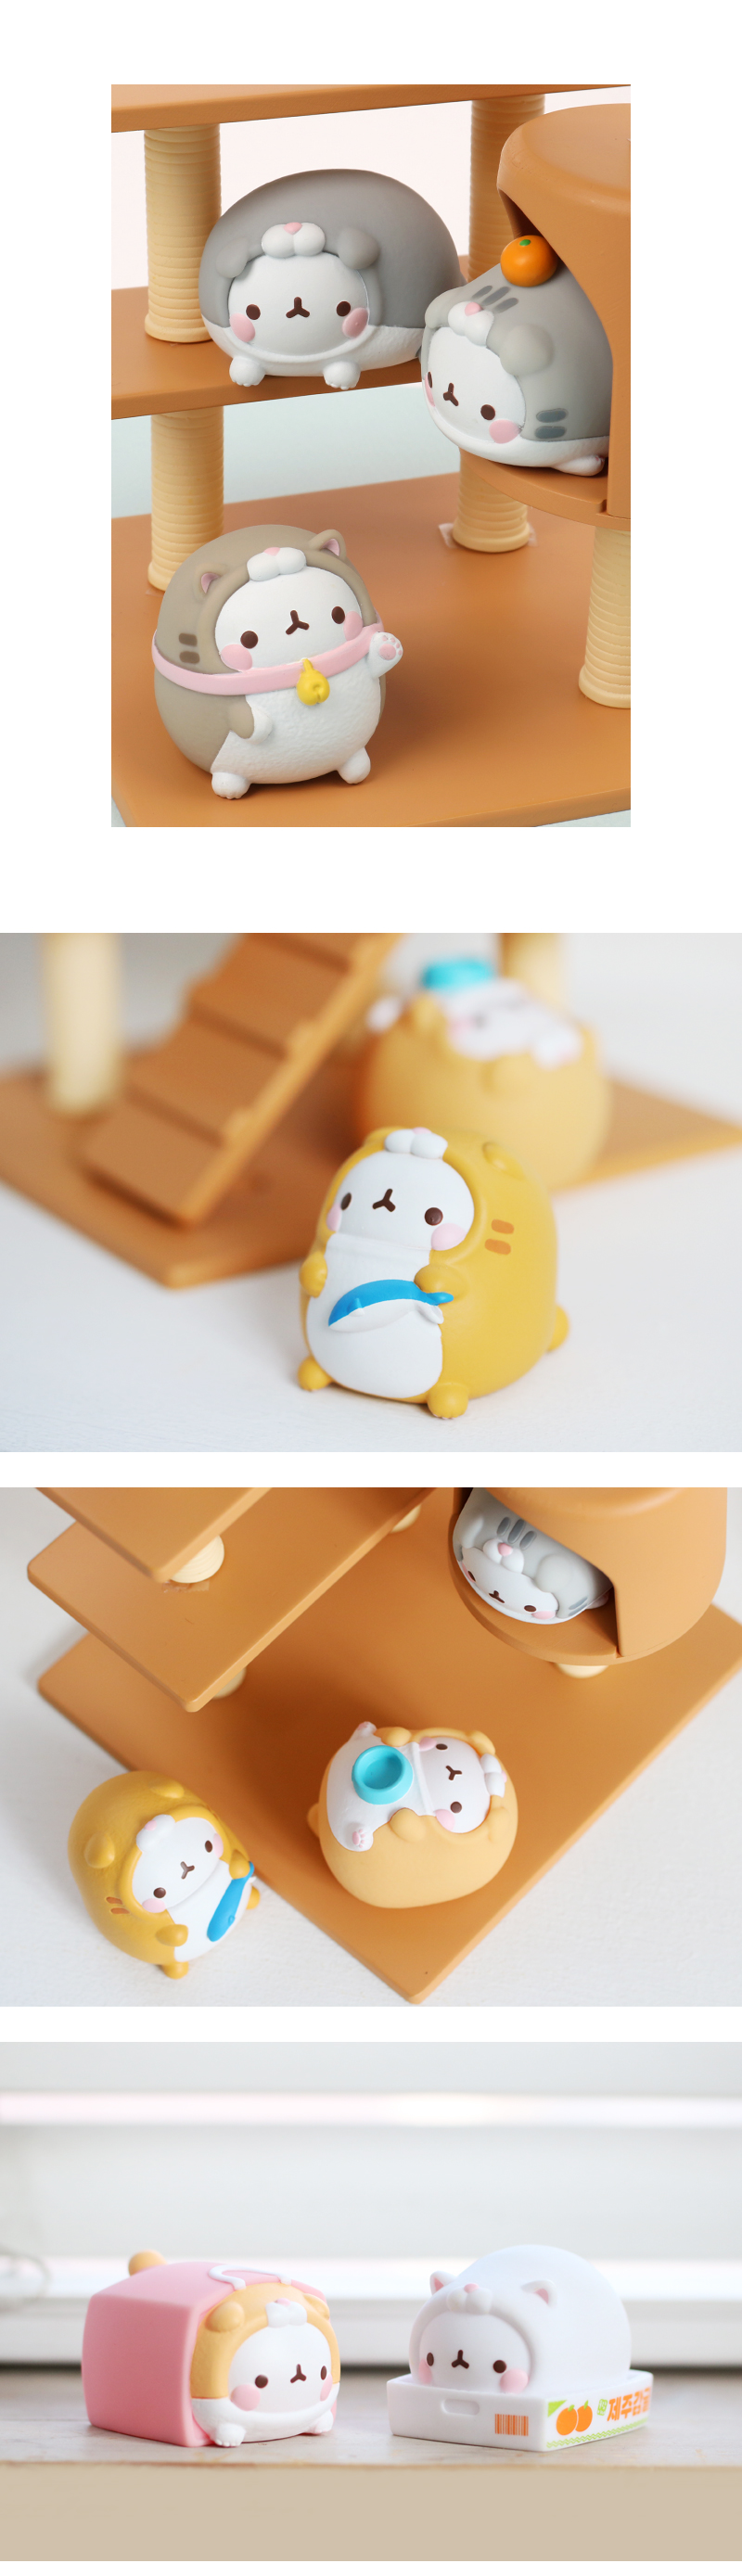 molang_figure_5th_03.jpg